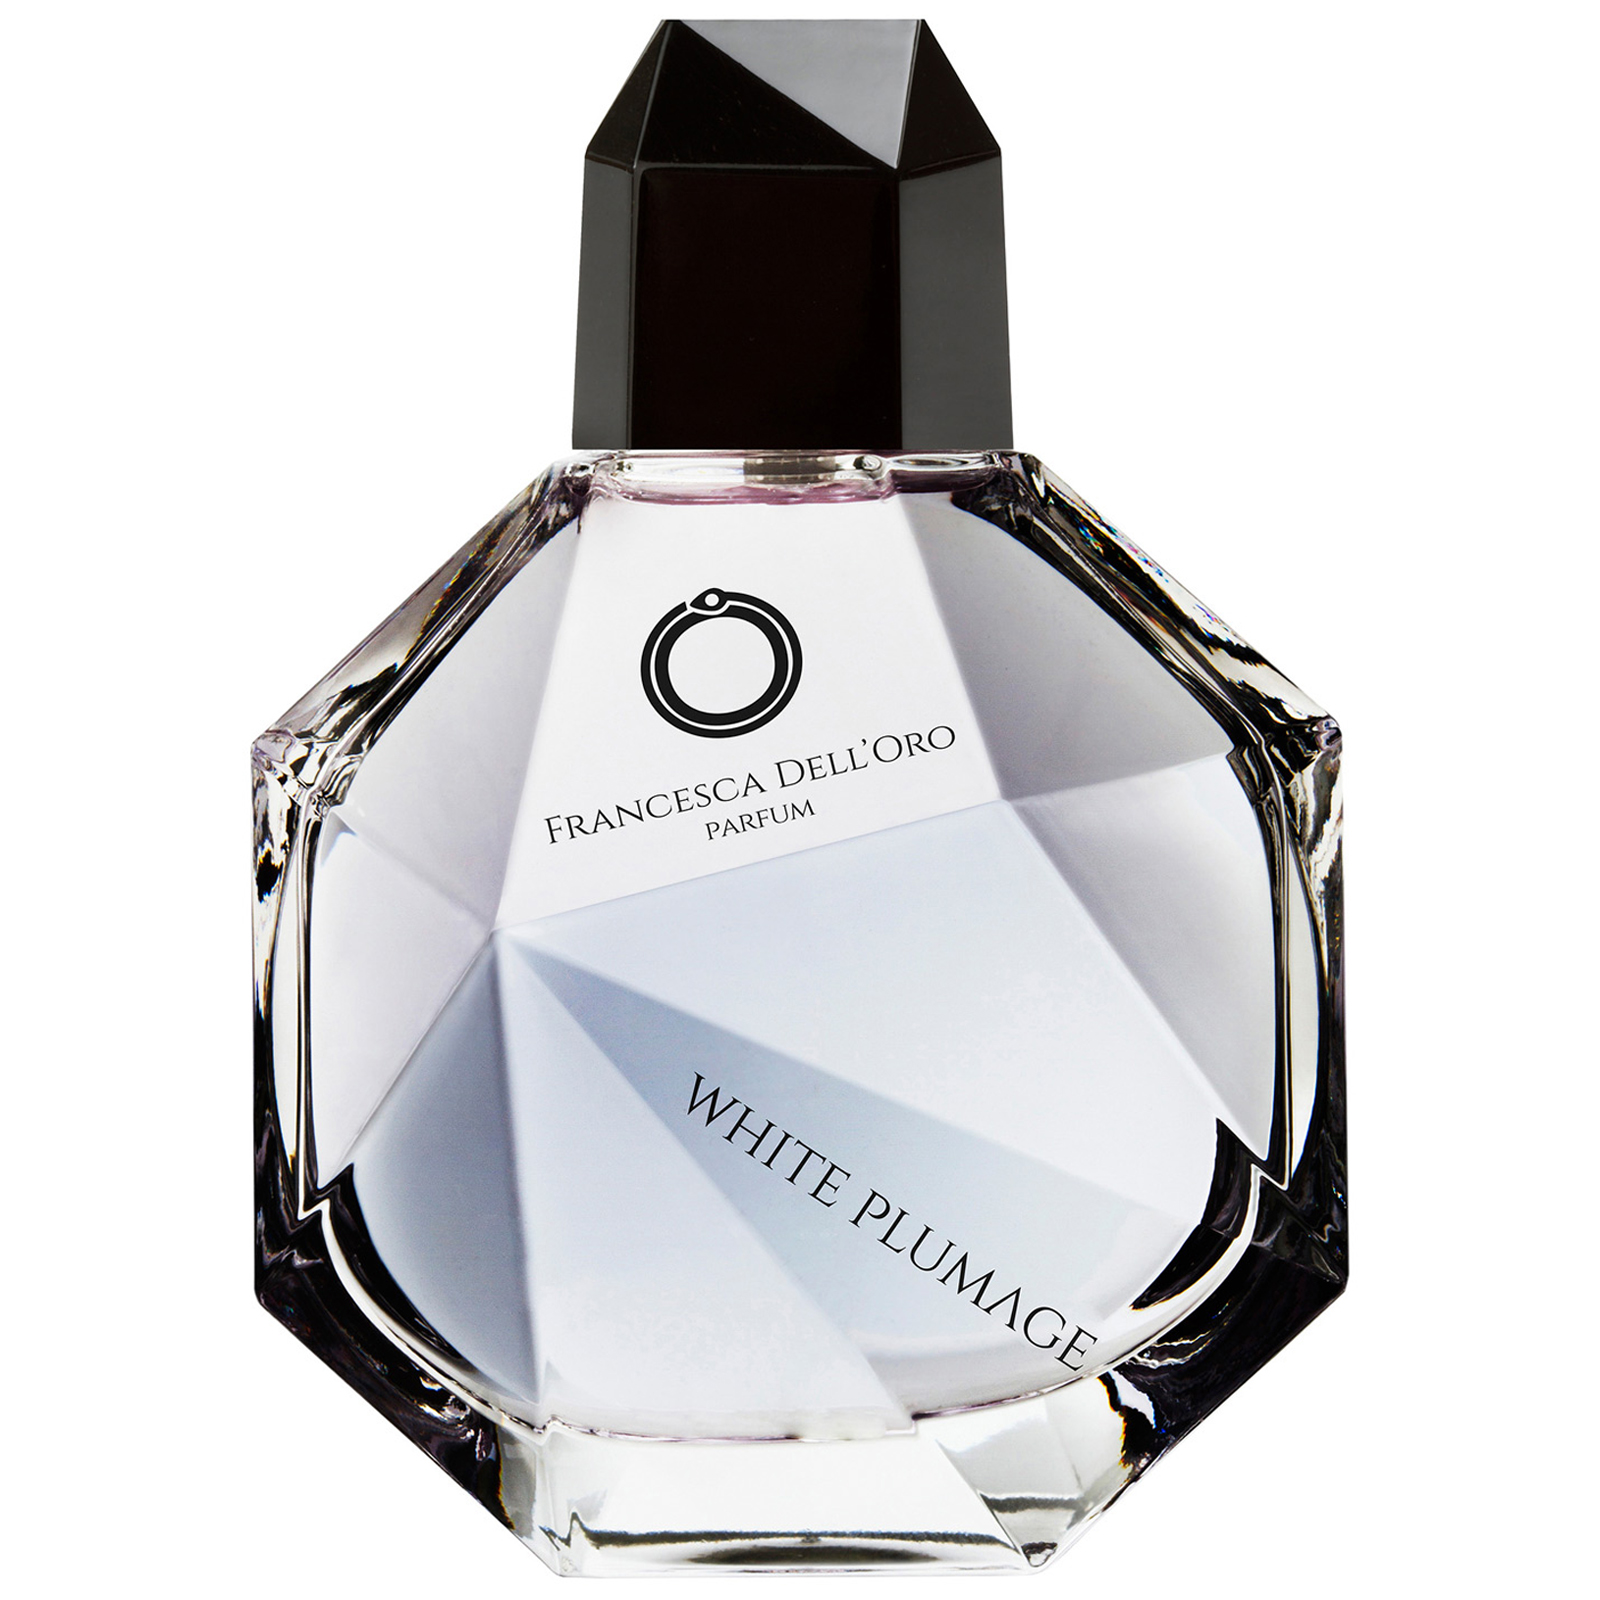 White plumage profumo eau de parfum 100 ml